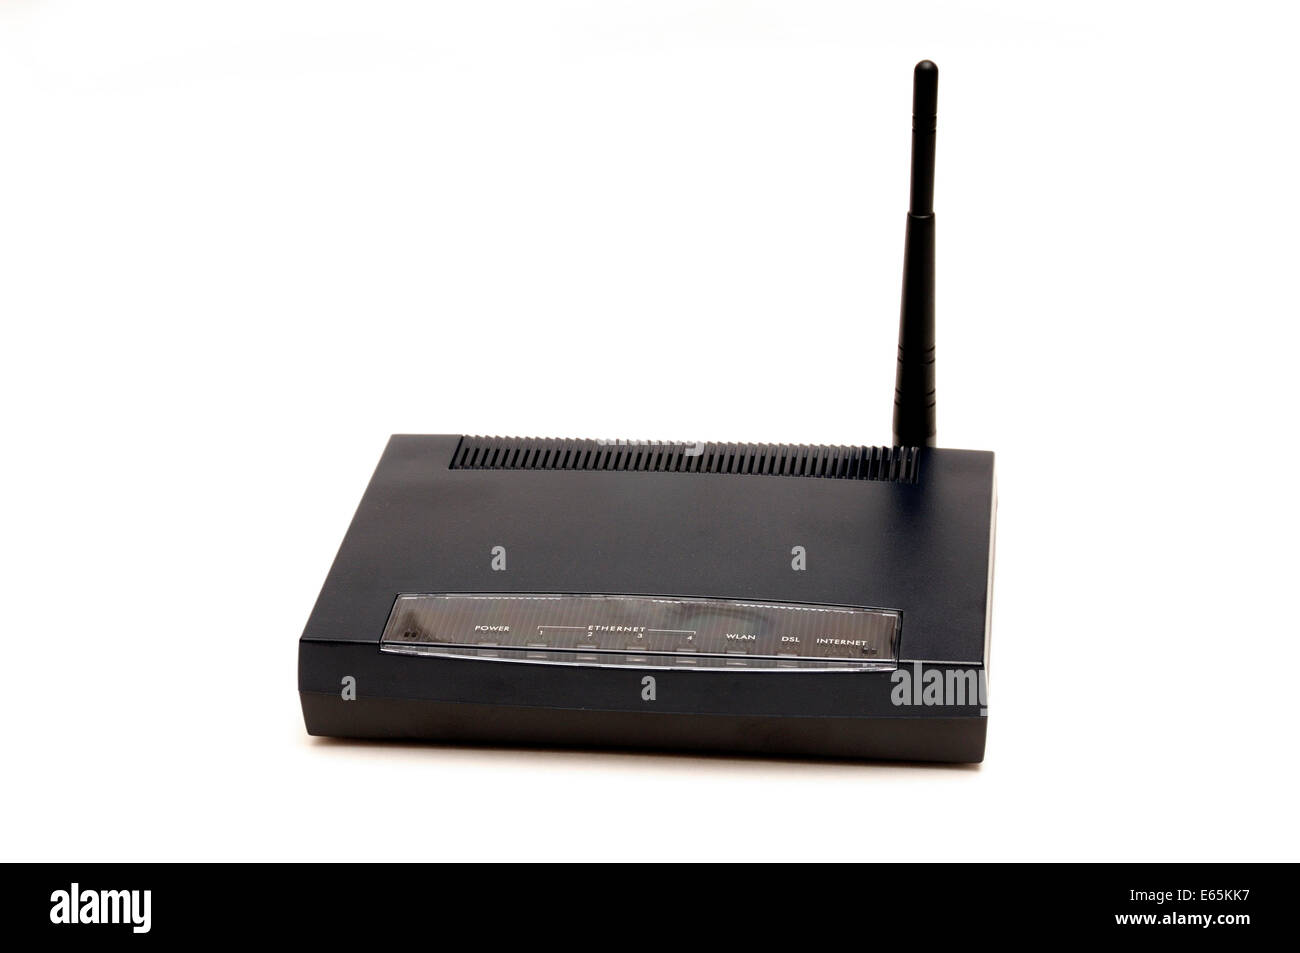 wireless router with antenna for LAN internet connection - Stock Image